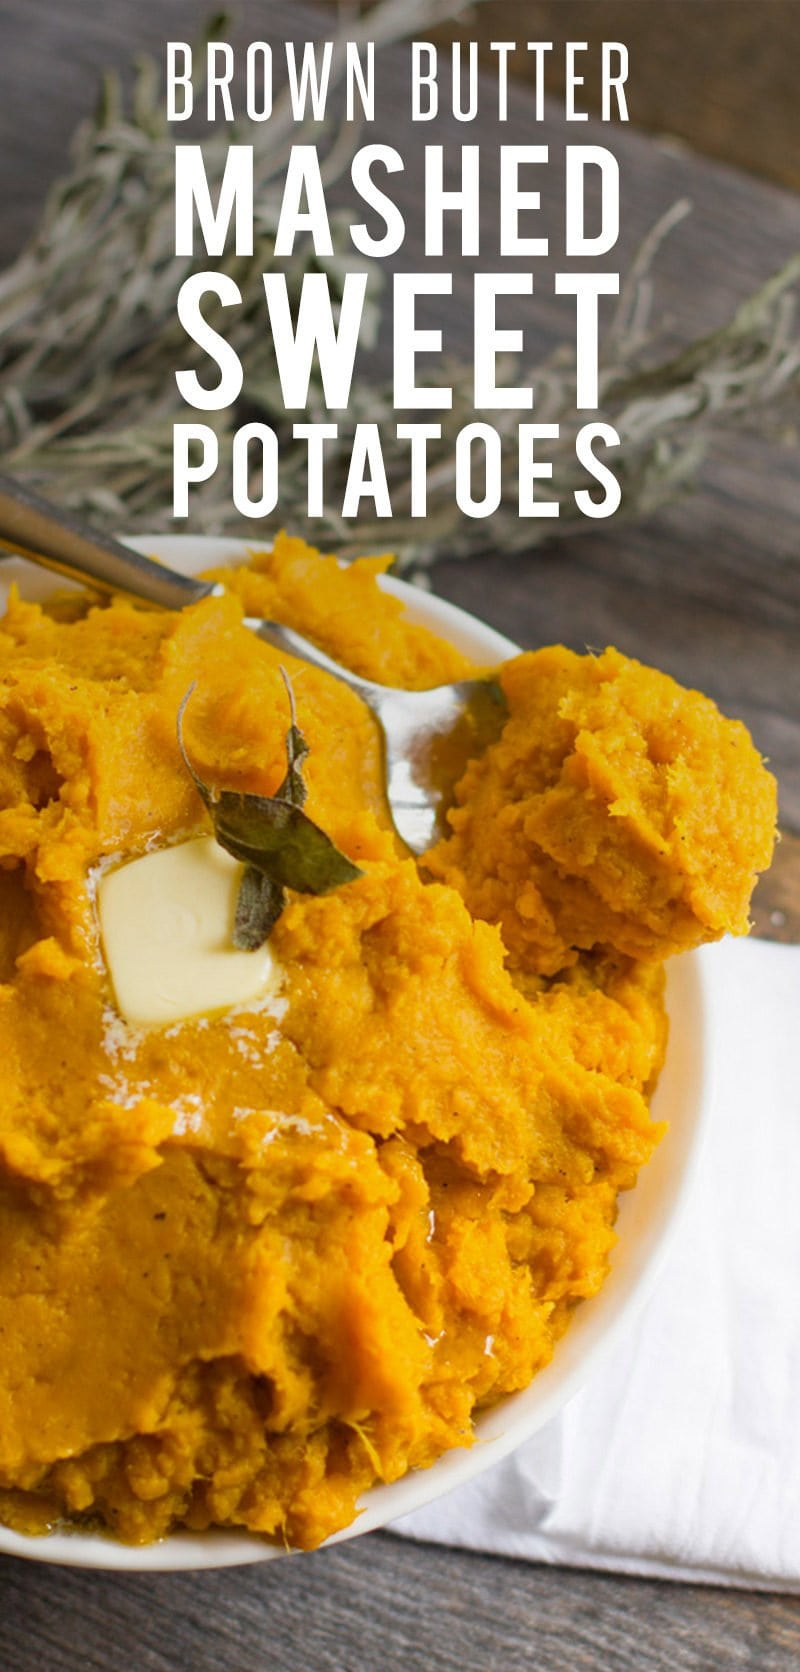 Brown Butter Mashed Sweet Potatoes